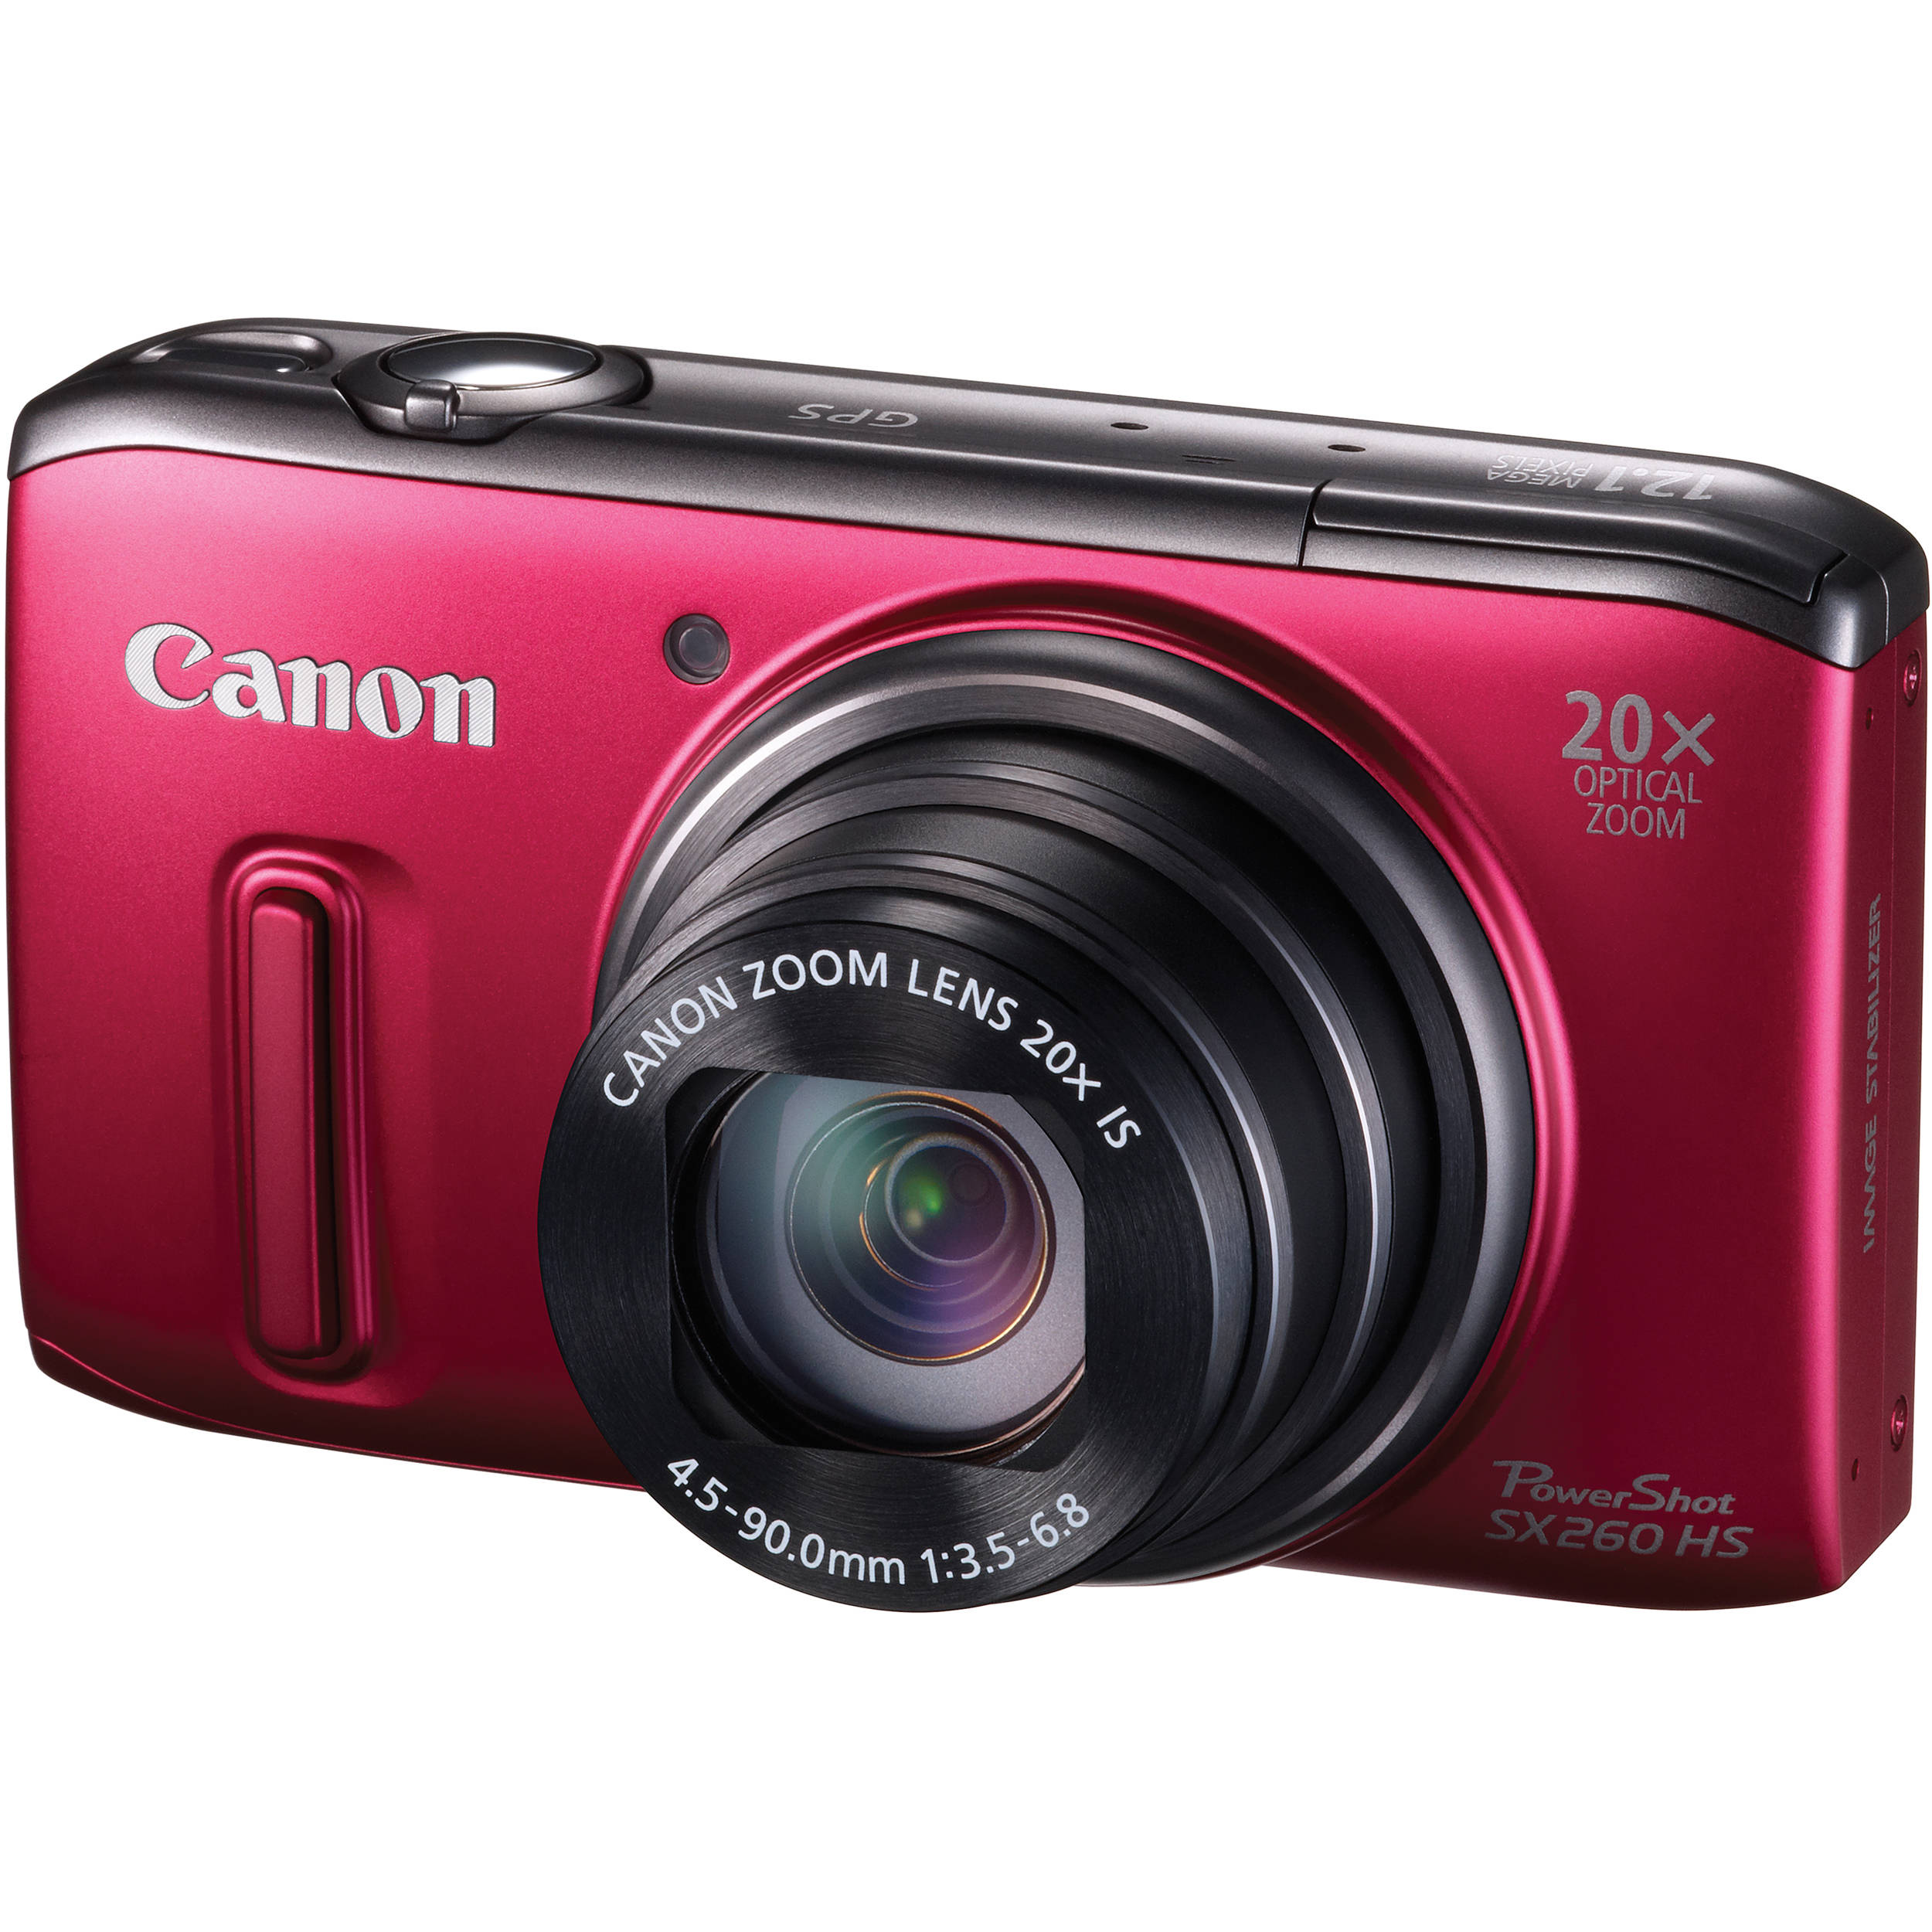 Image result for red canon powershot sx260hs